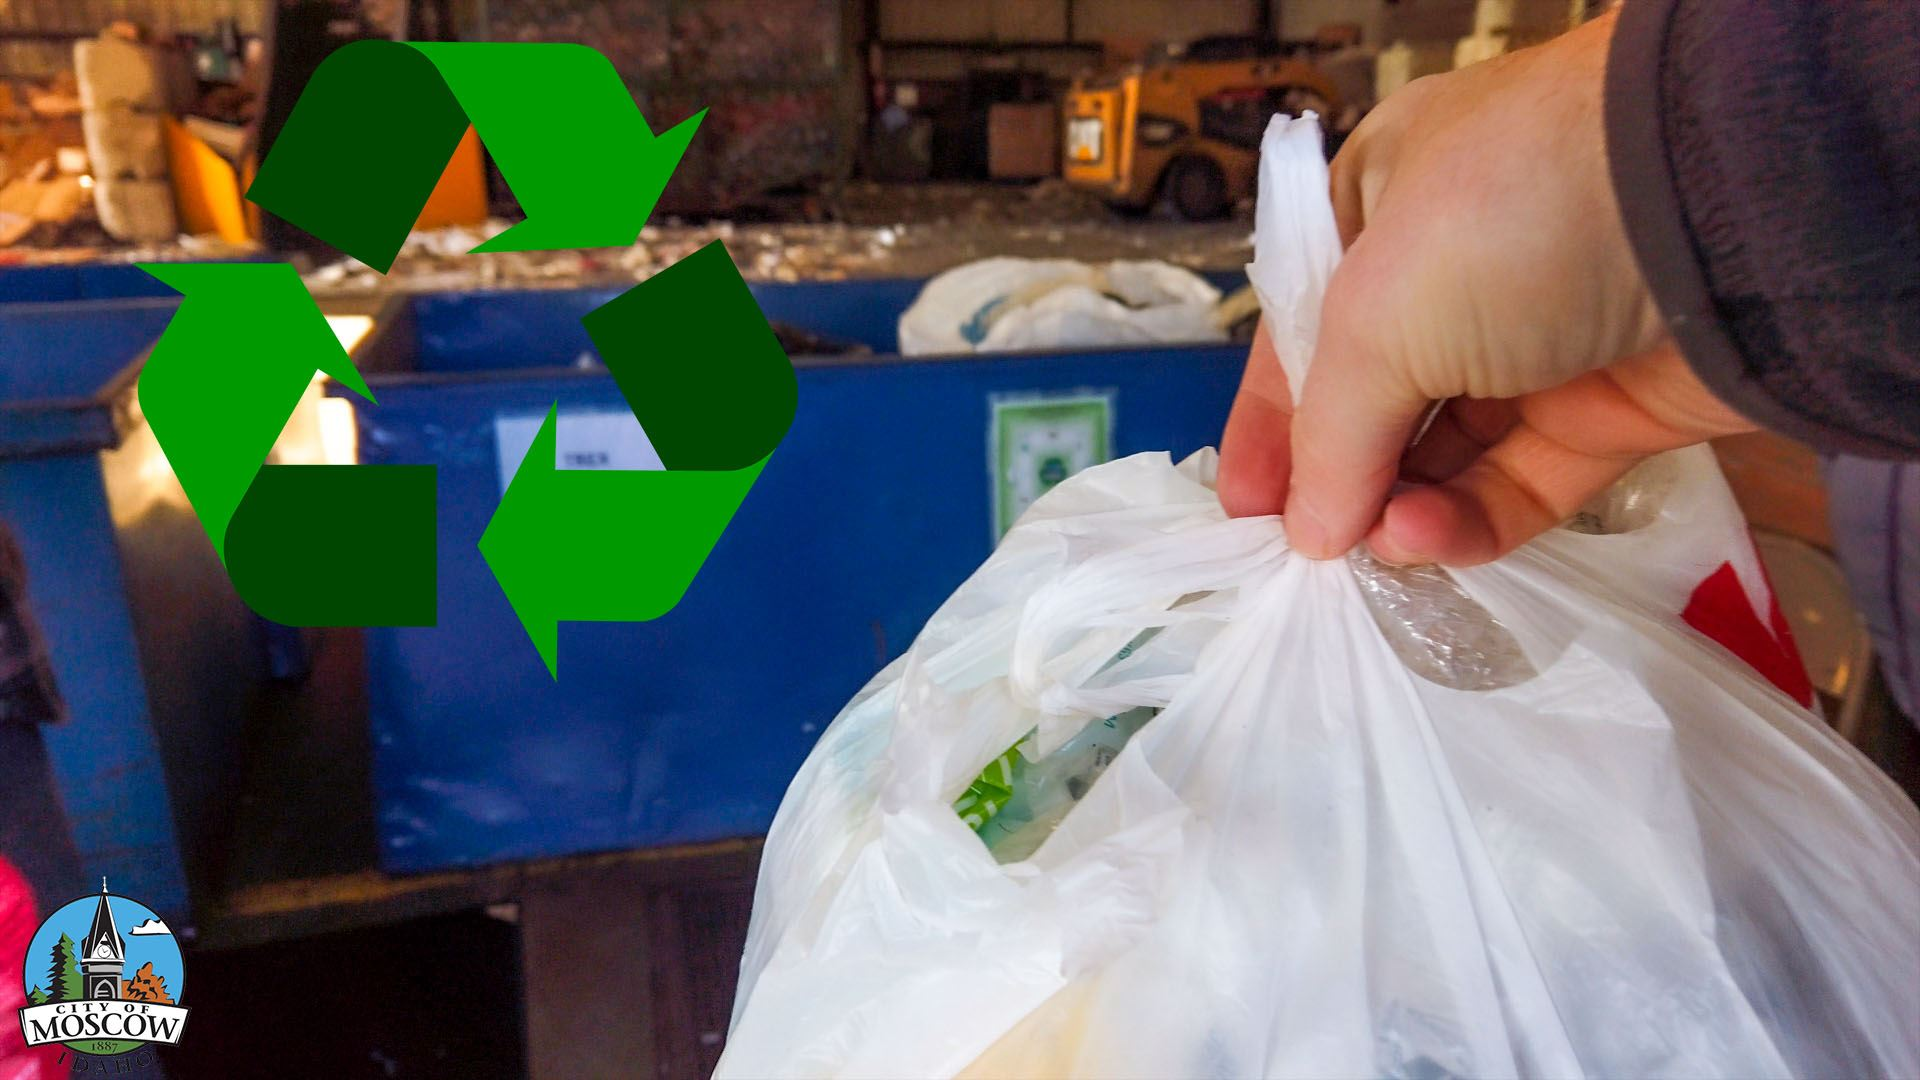 Recycling plastic bags at Moscow Recycling